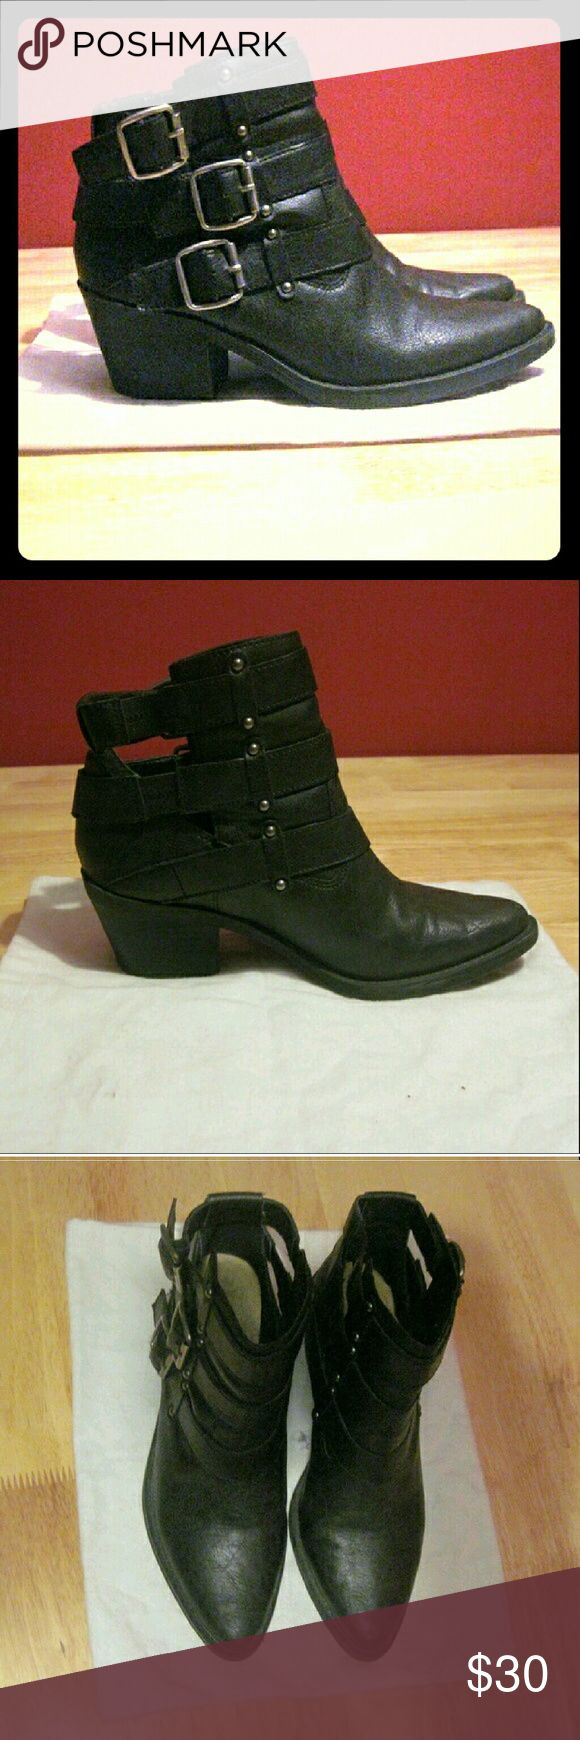 xmas sale rare black buckle booties classic Worn like twice. Comfy but my feet get too cold easily. Look higher end. Really on trend. Reasonable offers considered only. These are quite bad ass. Forever 21 Shoes Ankle Boots & Booties